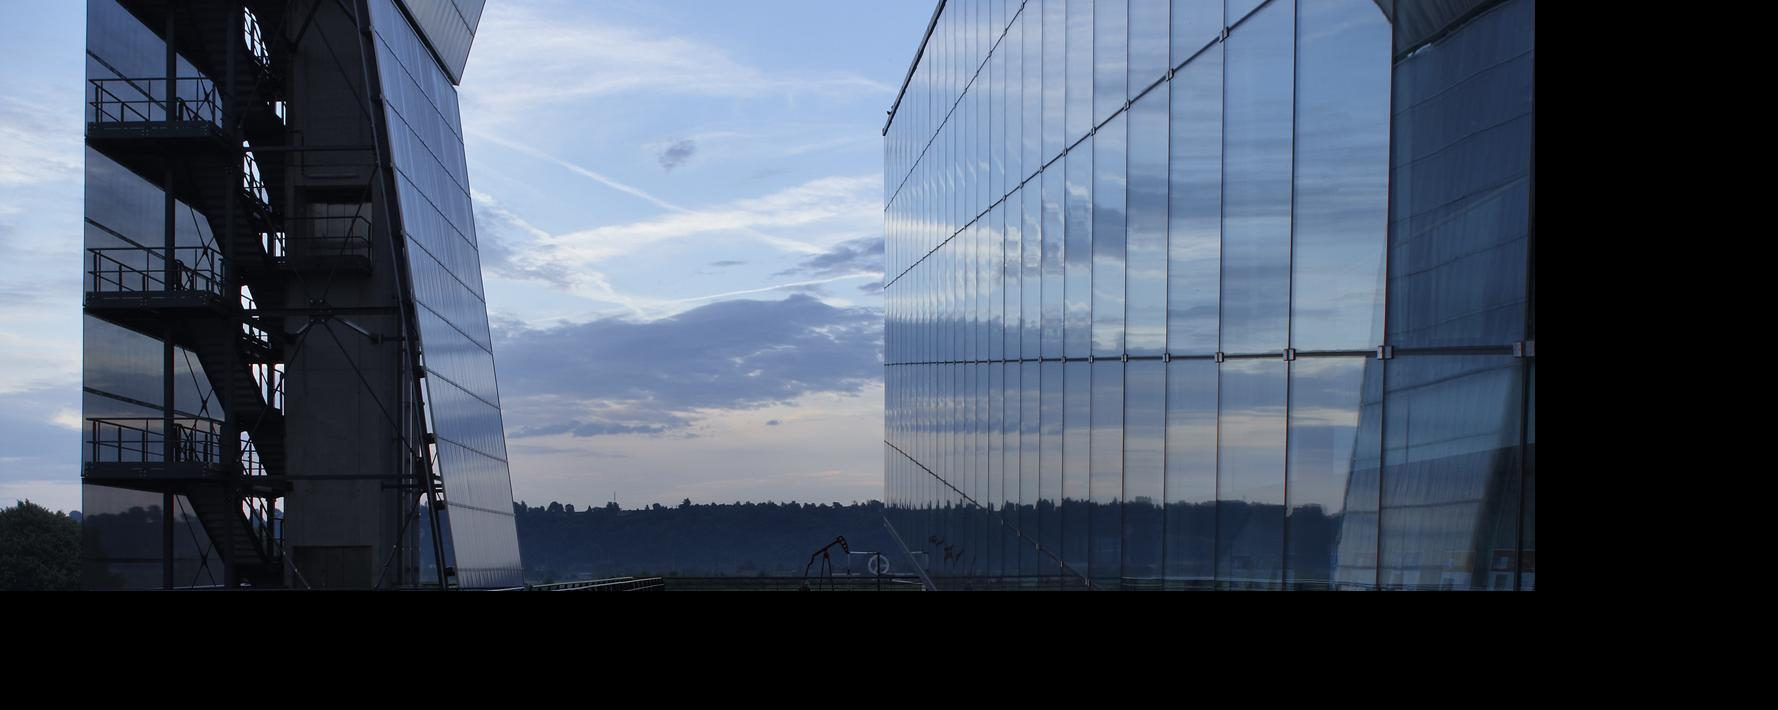 METAG | De geklemde beglazing van Saint-Gobain Building Glass